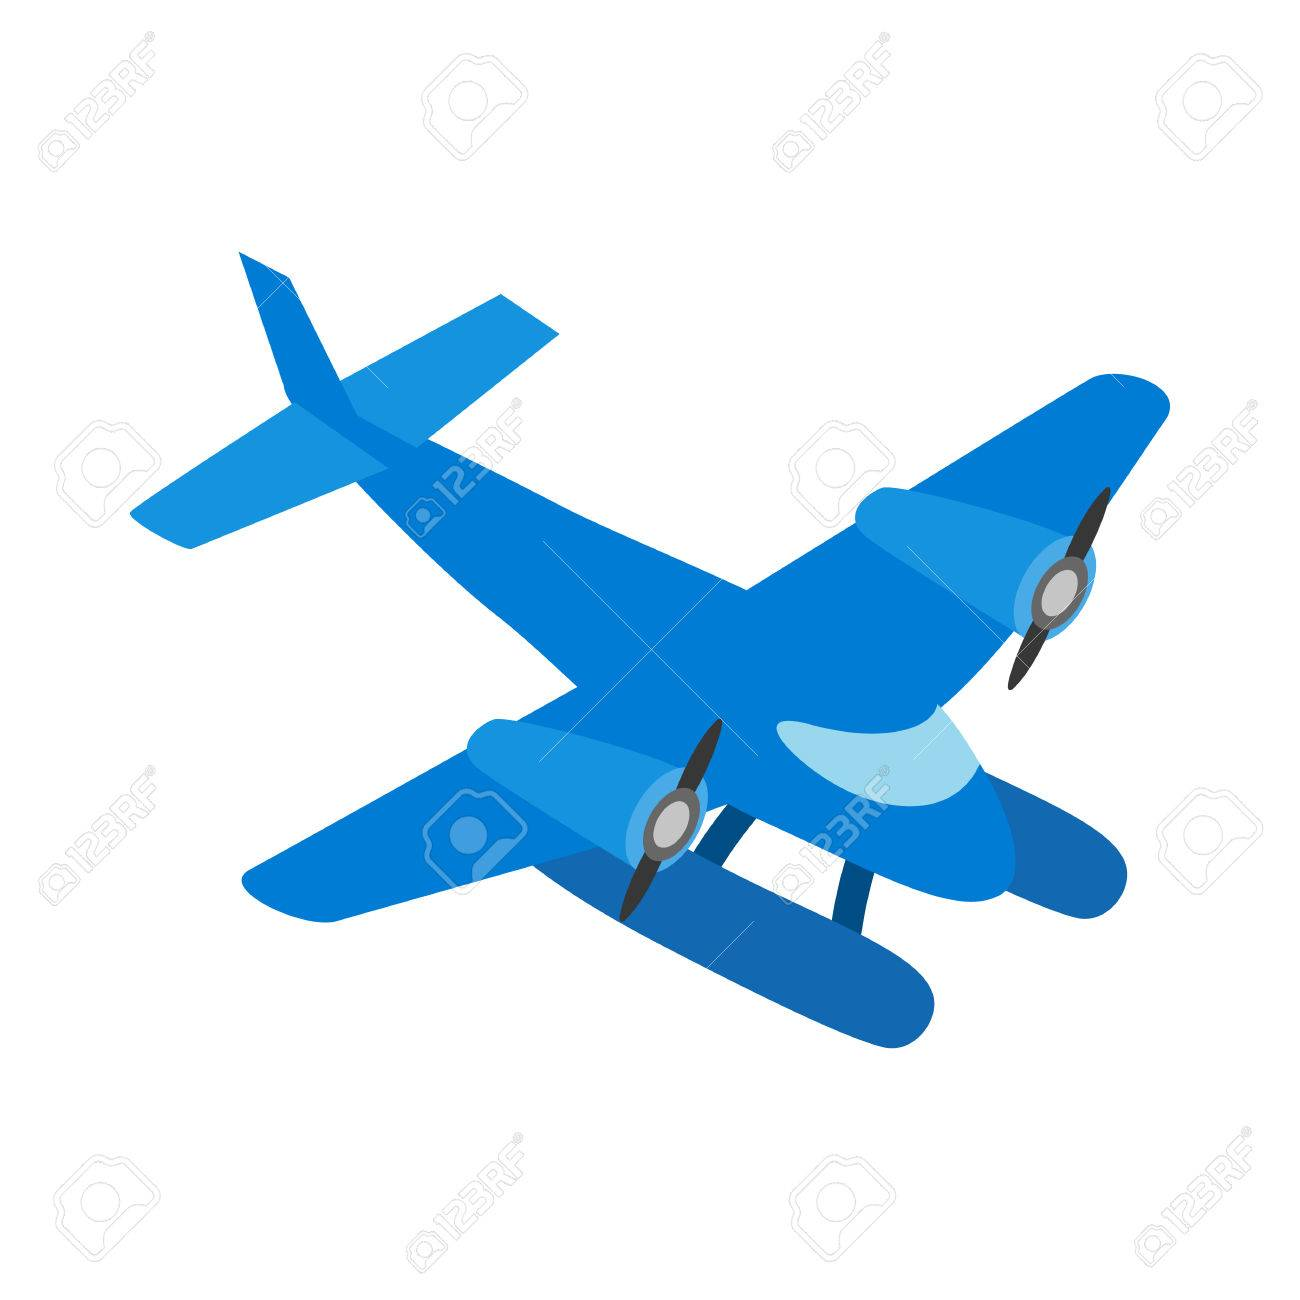 1300x1300 Blue Small Plane Icon In Isometric 3d Style Isolated On White